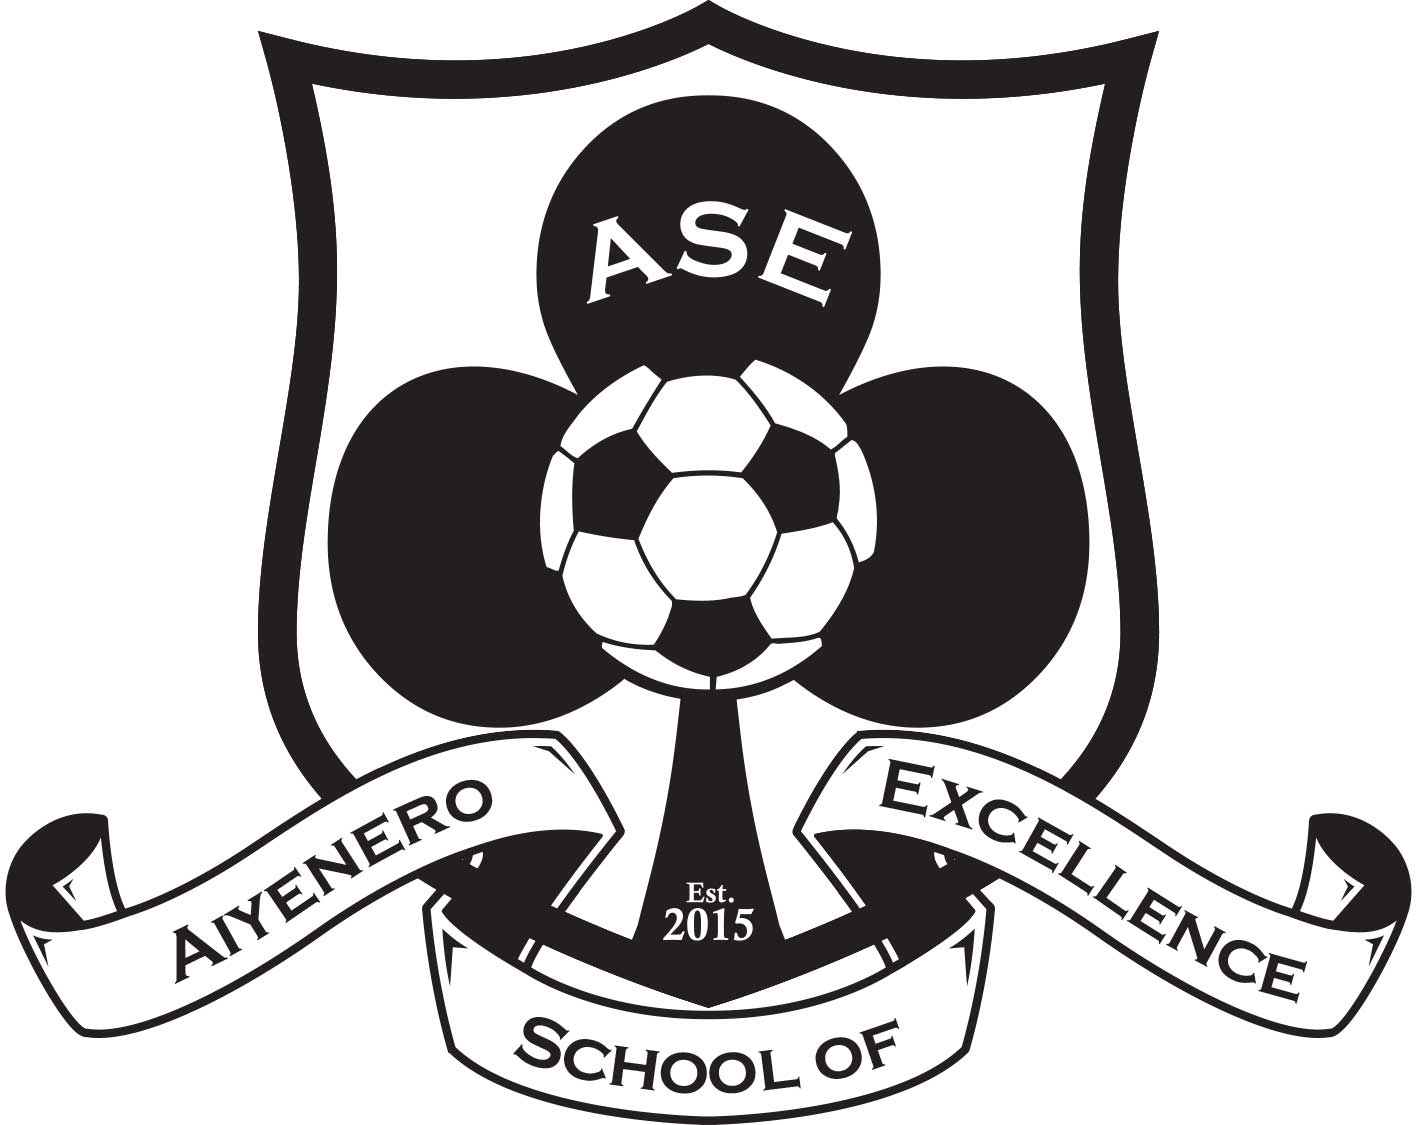 Aiyenero School of Excellence